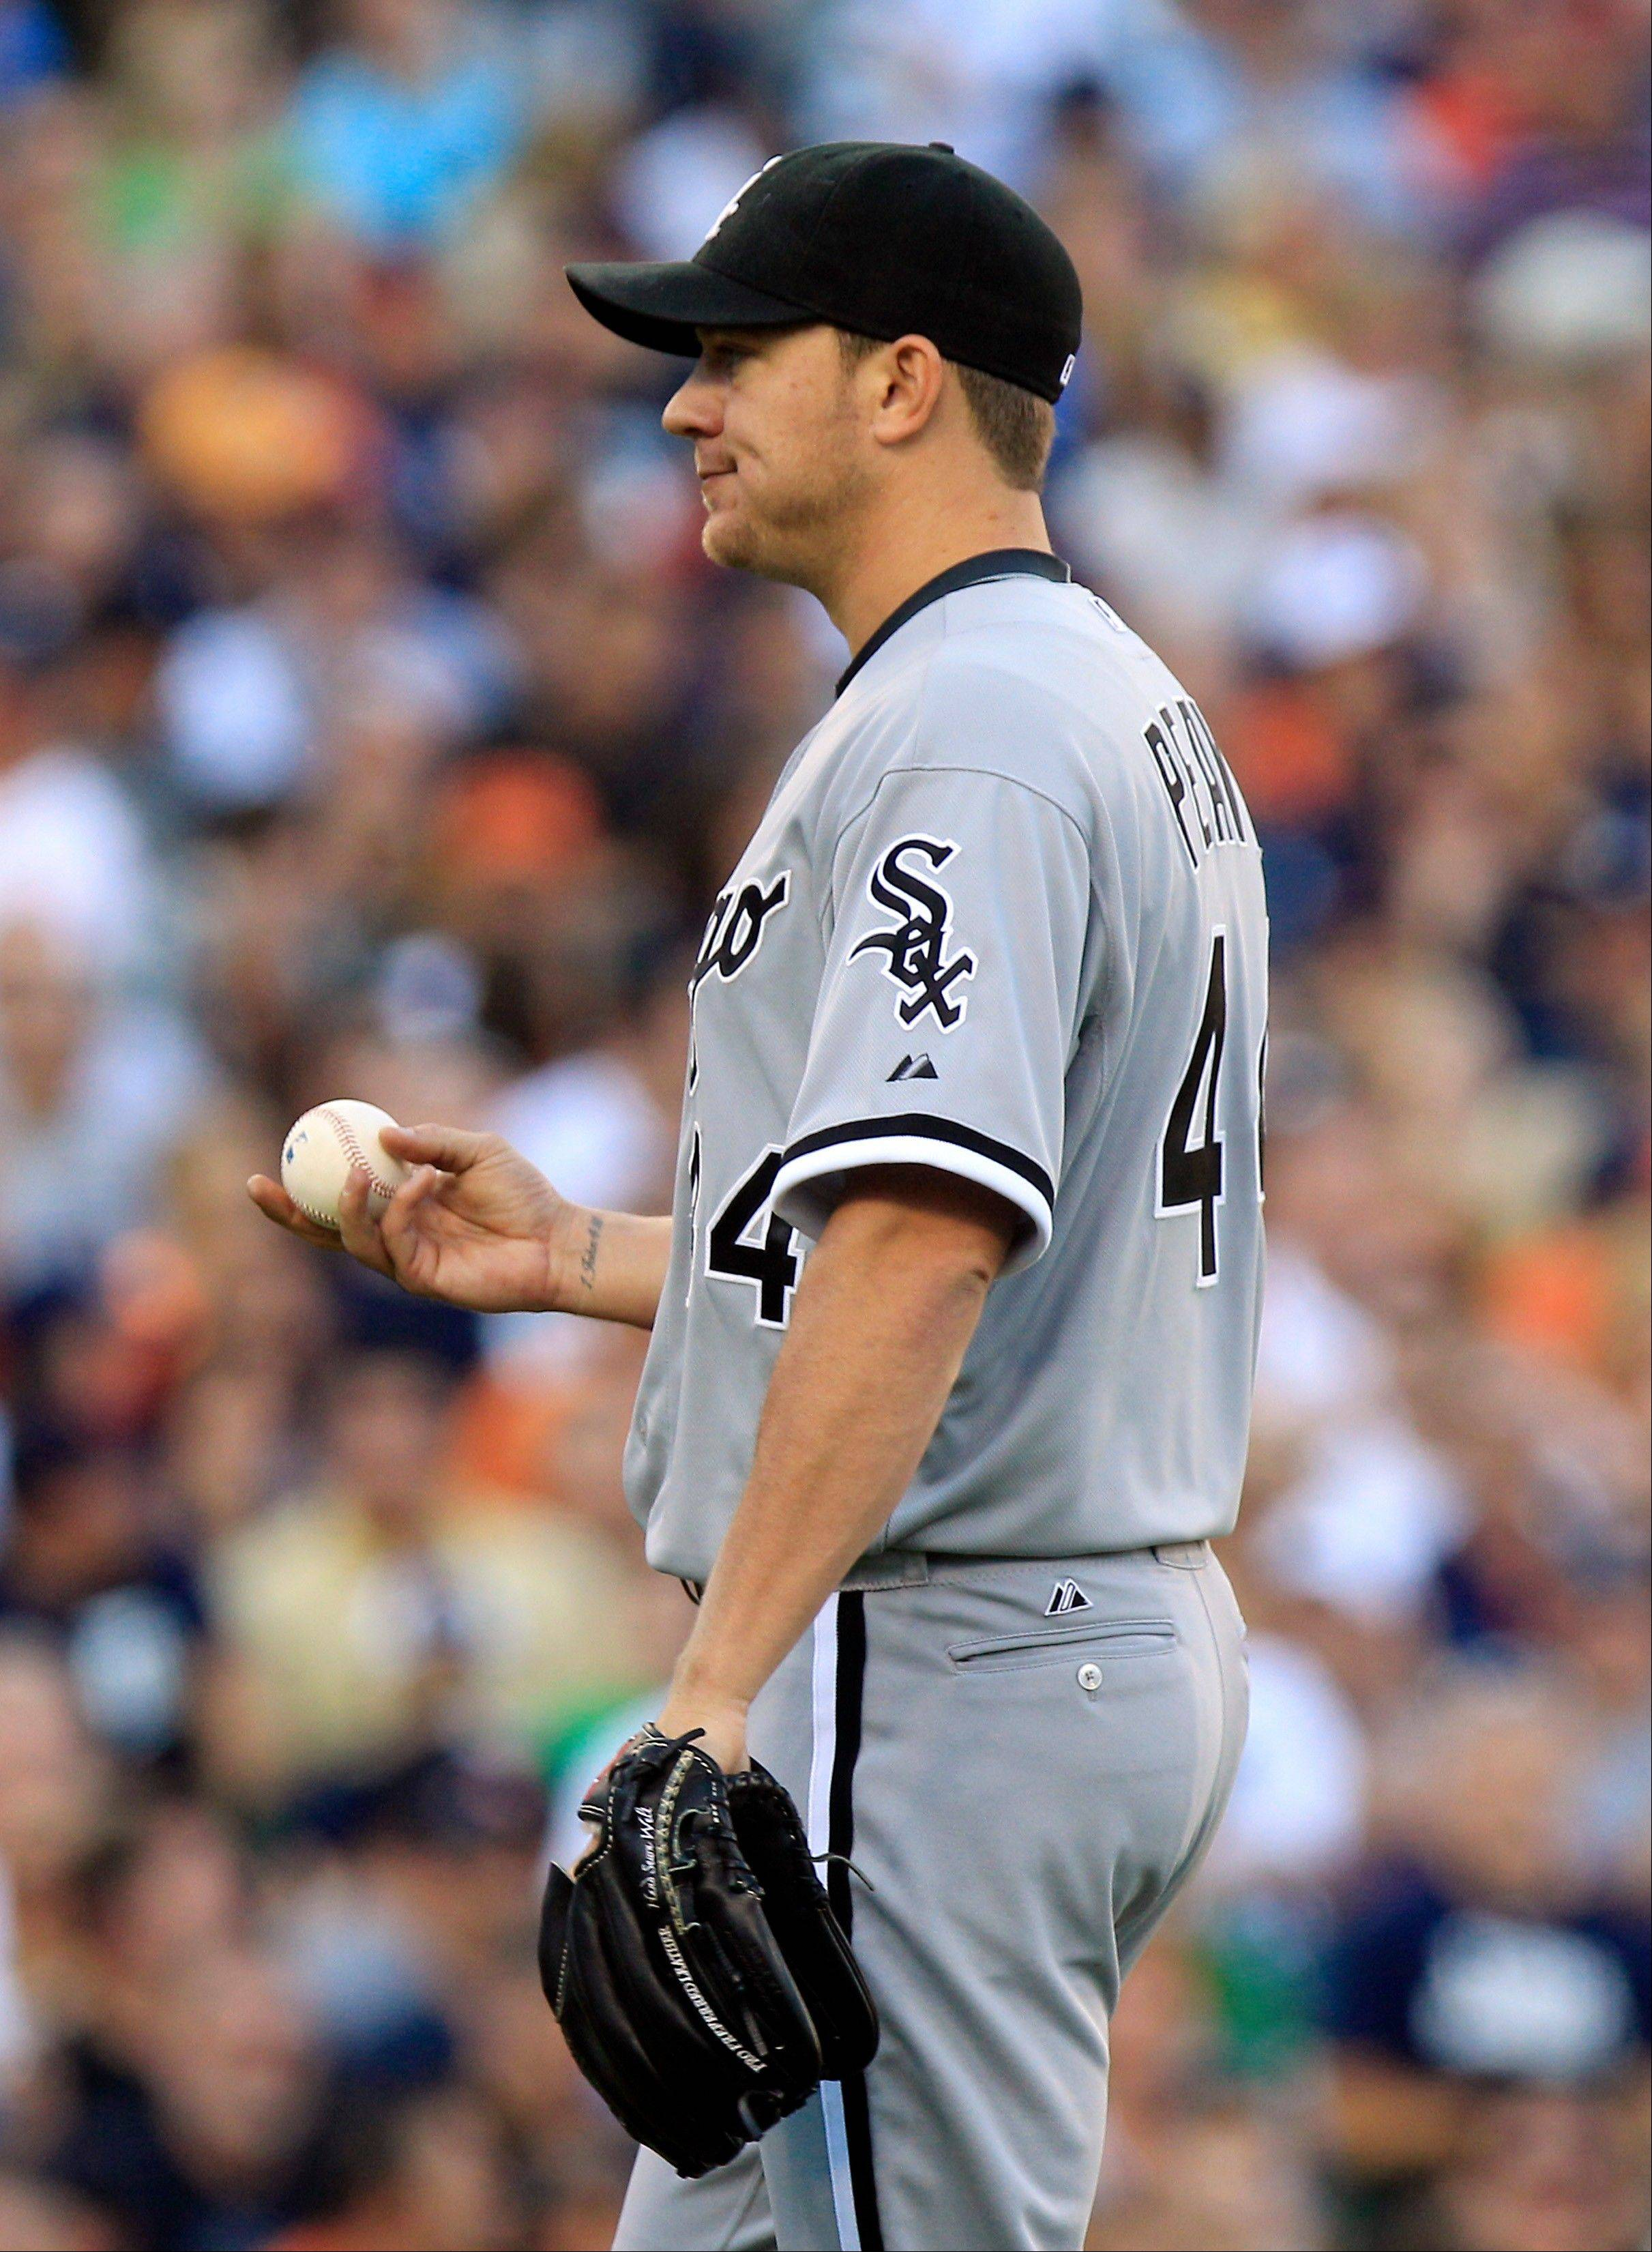 White Sox starting pitcher Jake Peavy reacts after hitting Detroit Tigers� Quintin Berry during Friday�s third inning in Detroit.